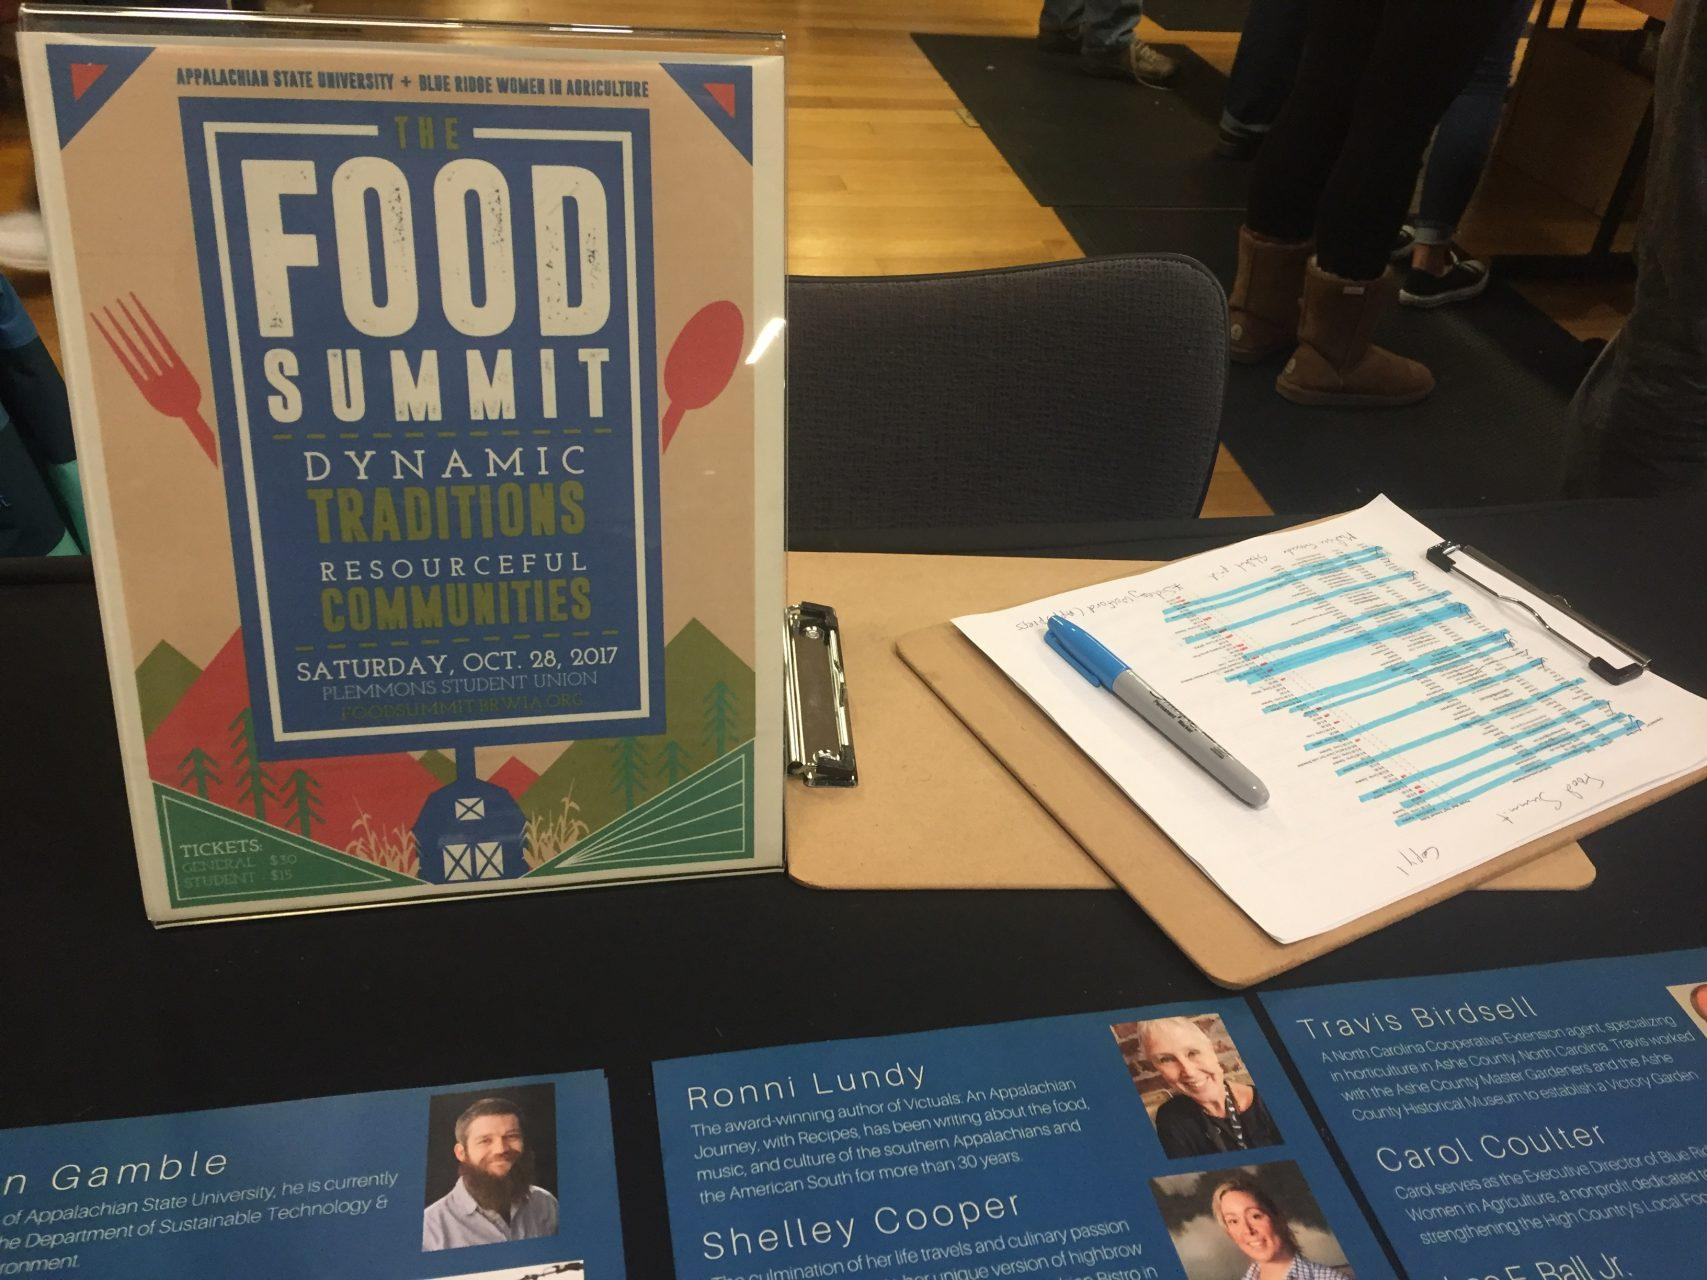 Food Summit: Where food and sustainability meet